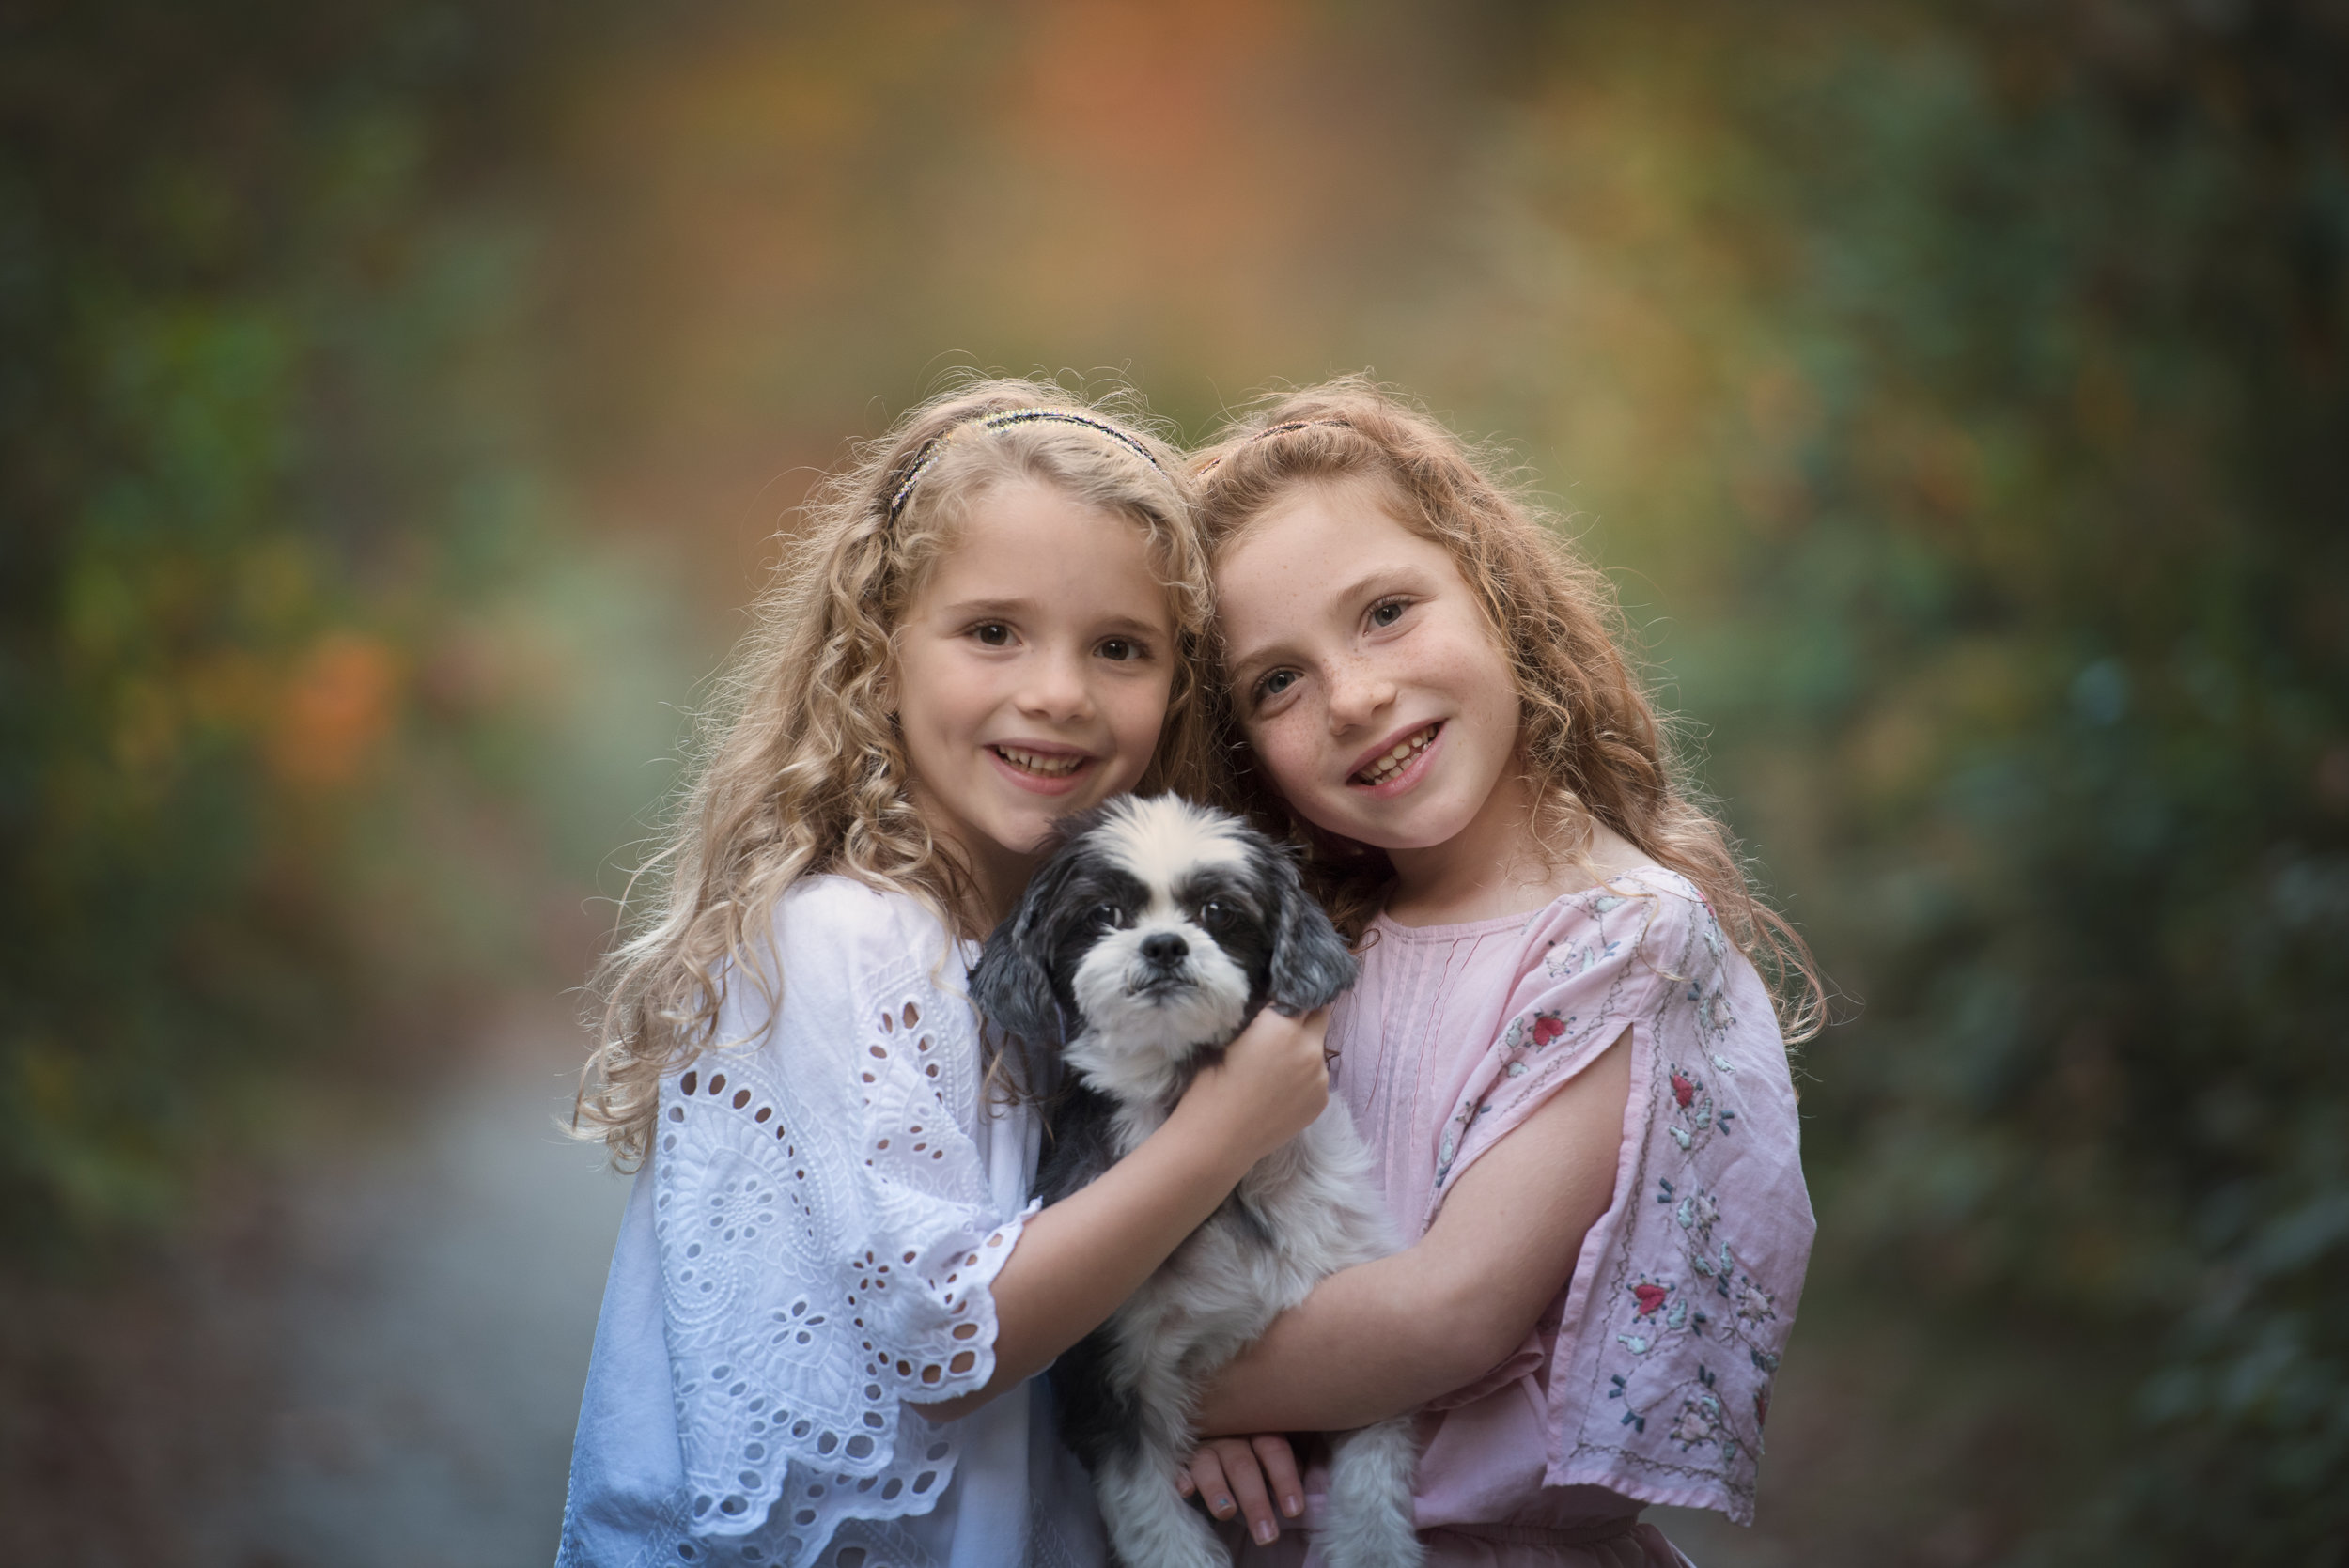 Tow Beautiful Girls Holding Their Dog